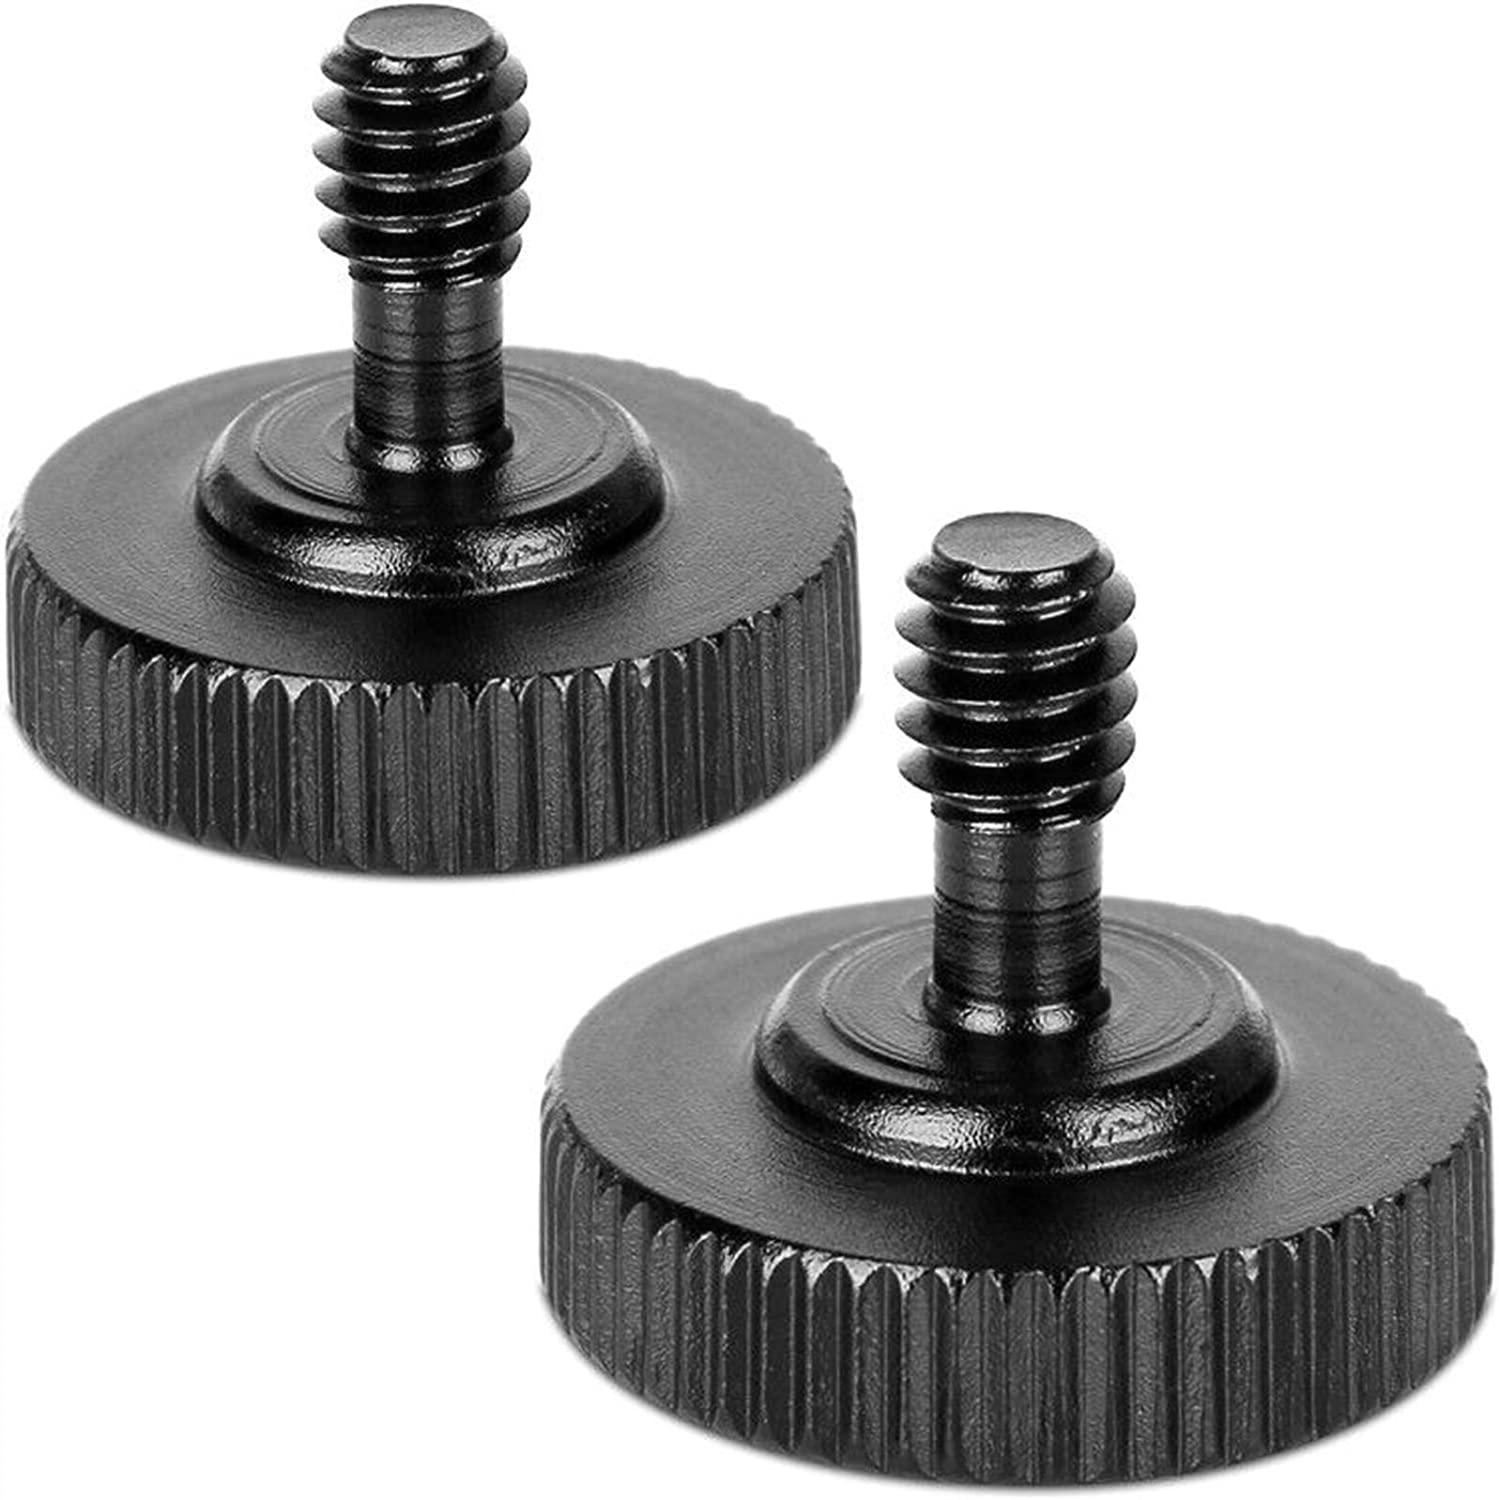 """ChromLives Thumb Screw Tripod Screw Camera Quick Release 1/4"""" Thumbscrew L Bracket Screw Mount Adapter with Bottom 1/4""""-20 Female Thread (Pack of 2)"""